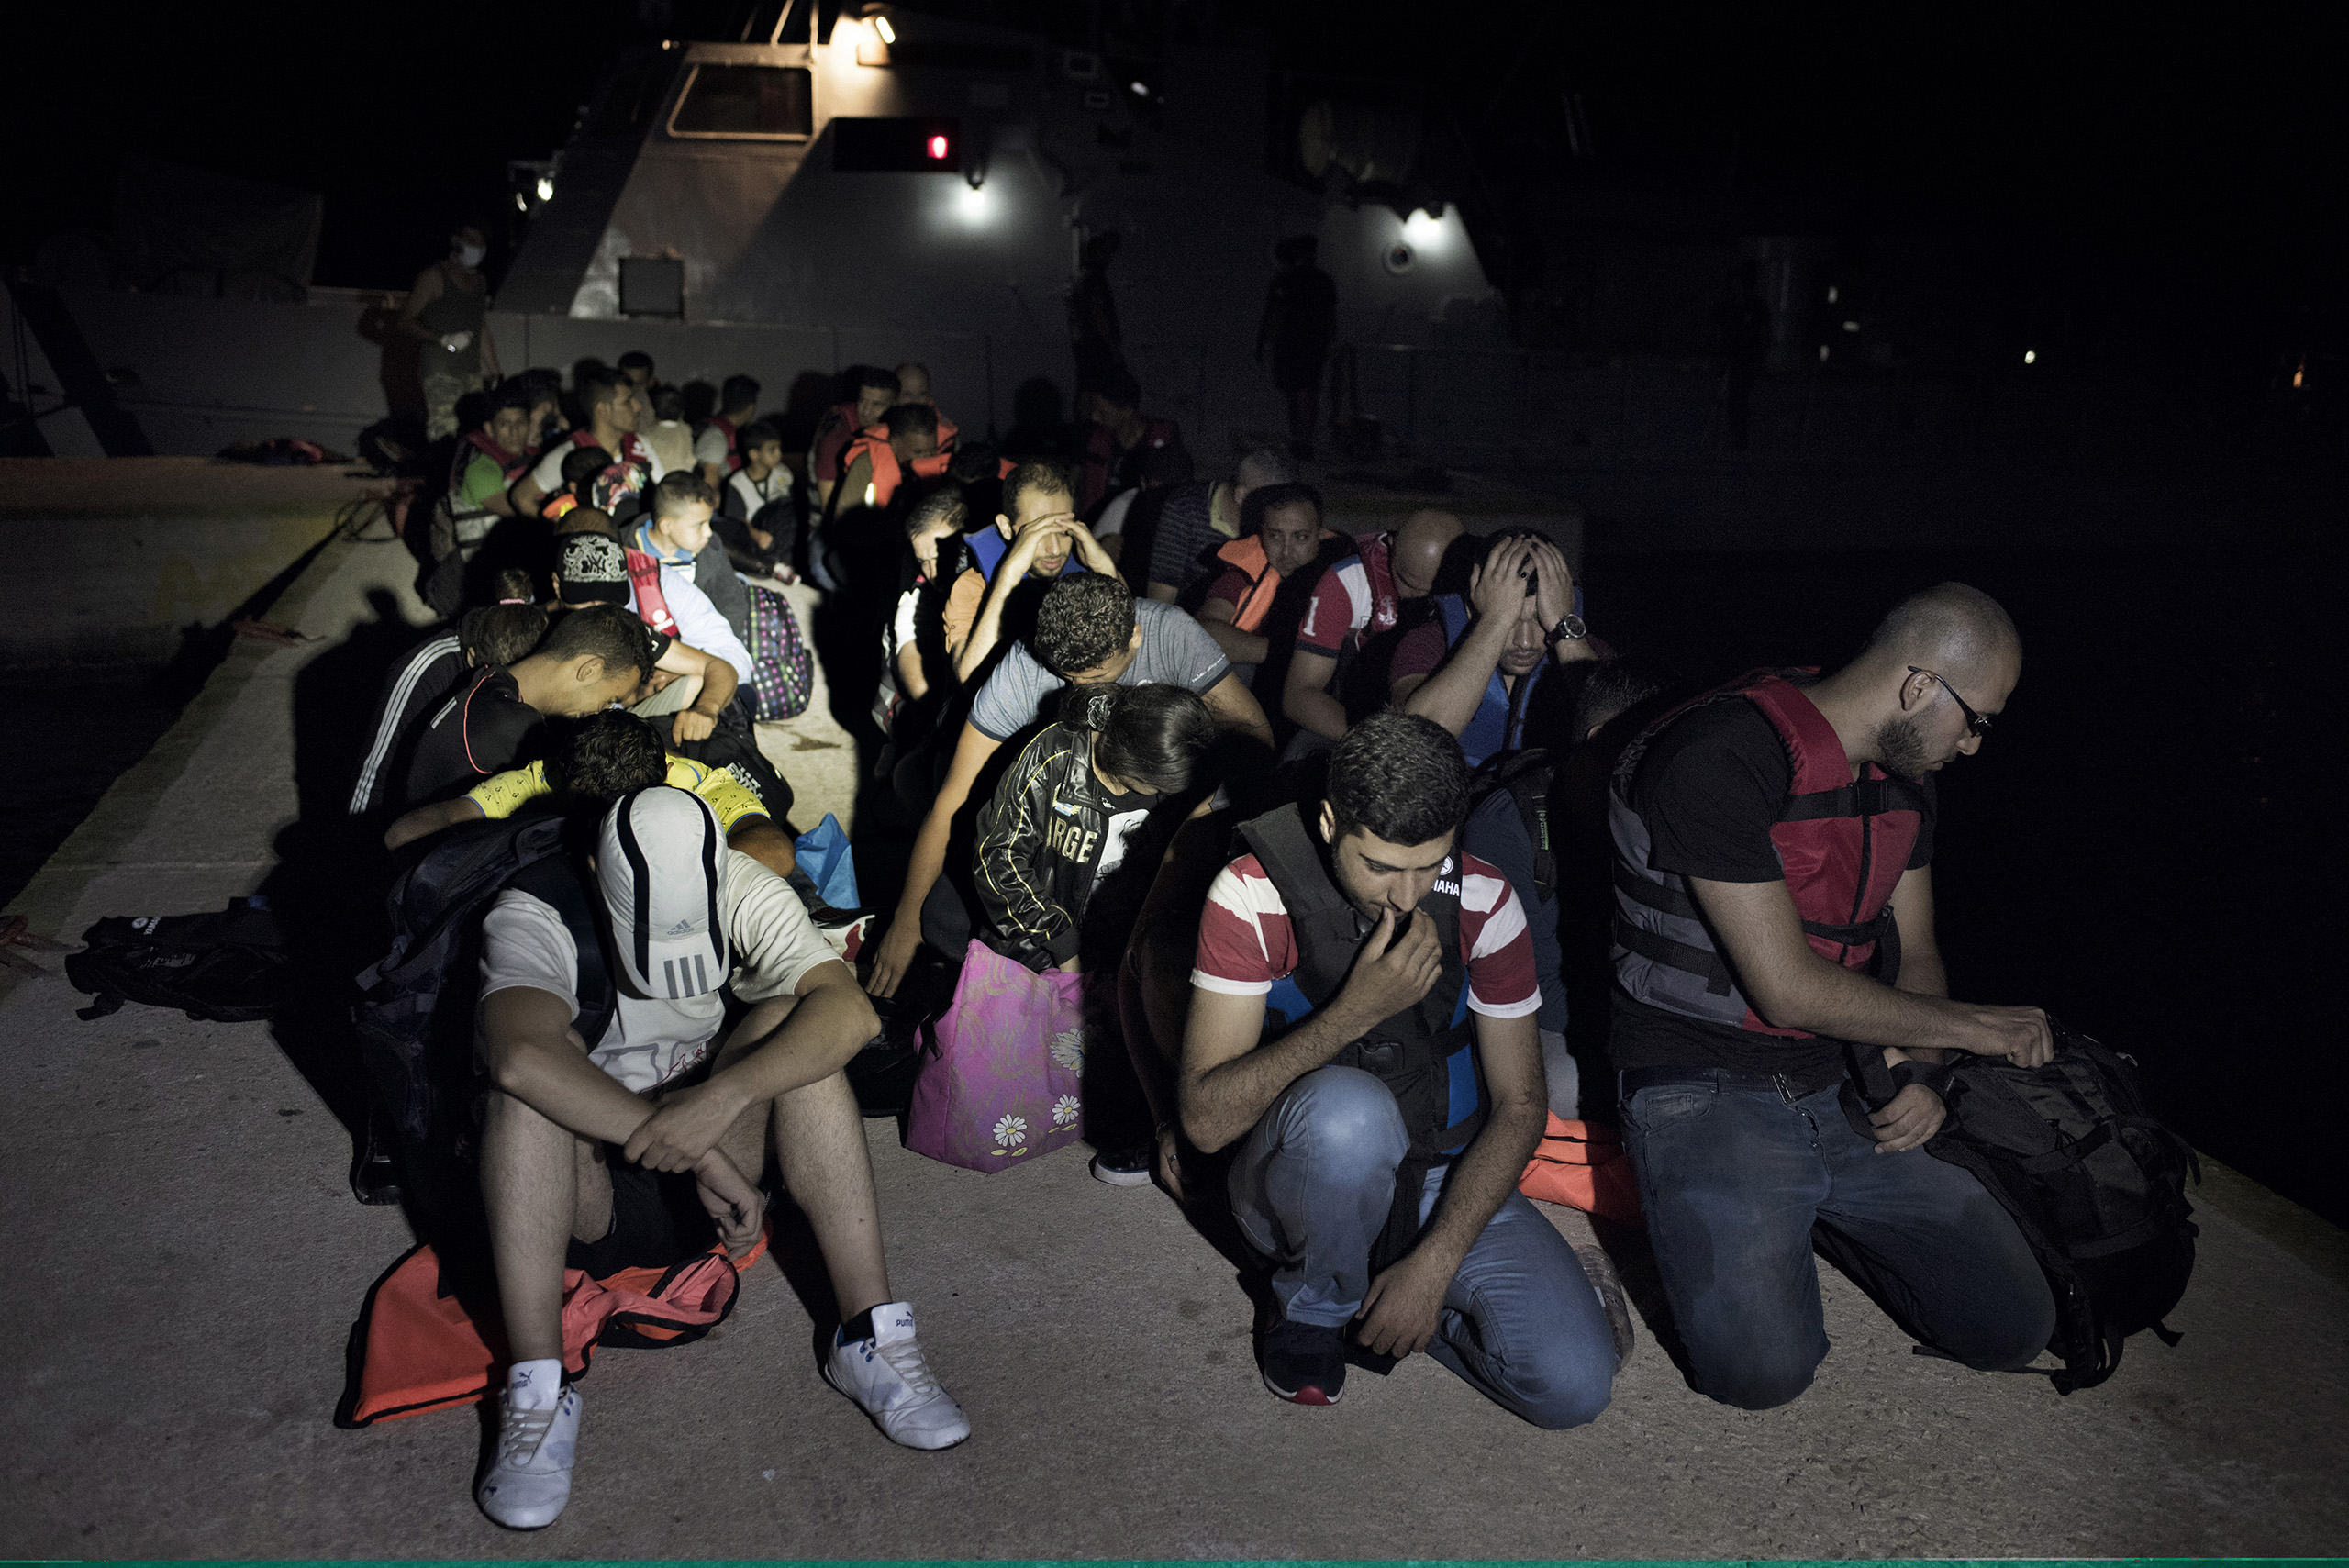 Syrian migrants huddle on the pier of a Greek naval outpost on the island of Farmakonisi after Greek coast guards rescued them from the waters near the border between Greece and Turkey. Sept. 7, 2015.